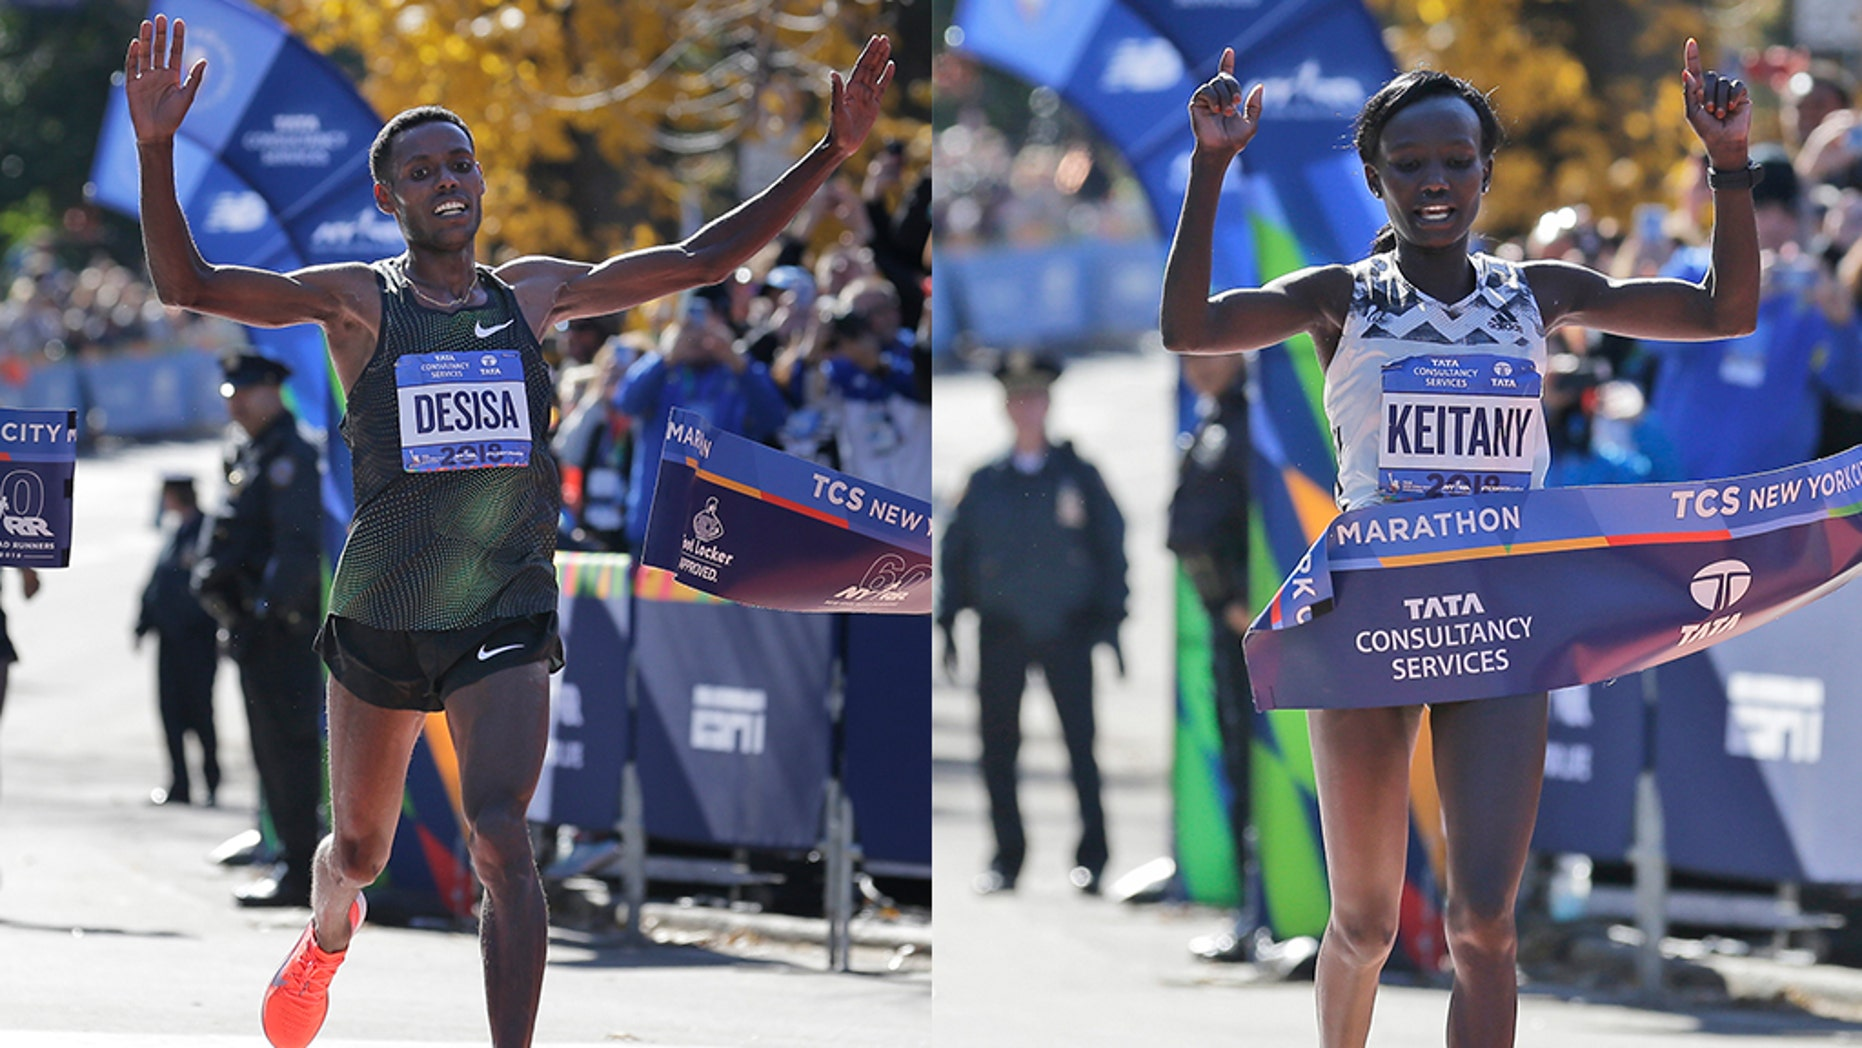 Lelisa Desisa, of Ethiopia, crosses the finish line first in the men's division of the New York City Marathon (left). Mary Keitany(right) of Kenya finished first in the women's division of the race, her fourth time winning.